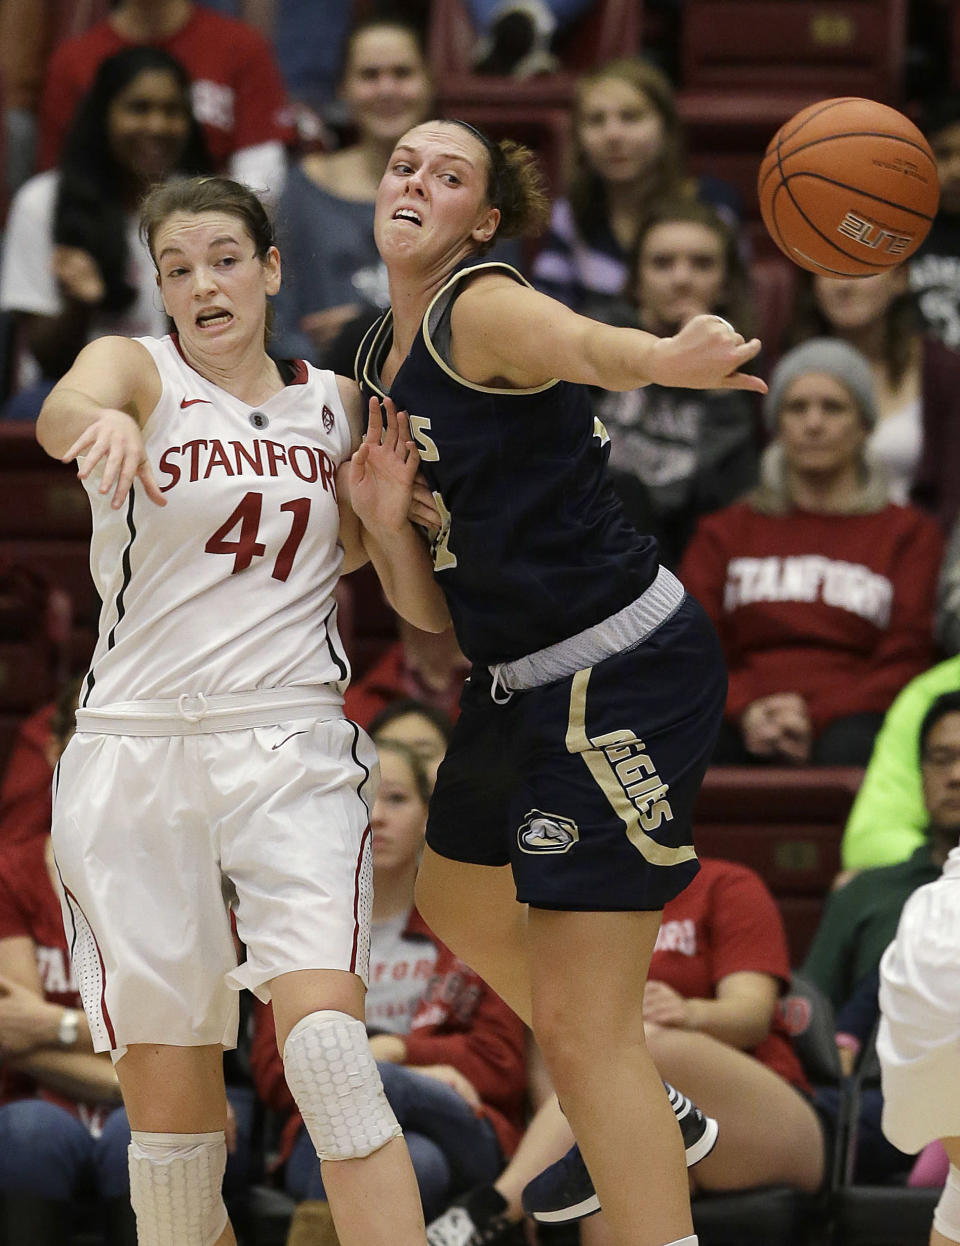 Stanford forward Bonnie Samuelson (41) passes the ball as UC Davis forward Celia Marfone defends during the first half of an NCAA college basketball game in Stanford, Calif., Monday, Dec. 22, 2014. (AP Photo/Jeff Chiu)